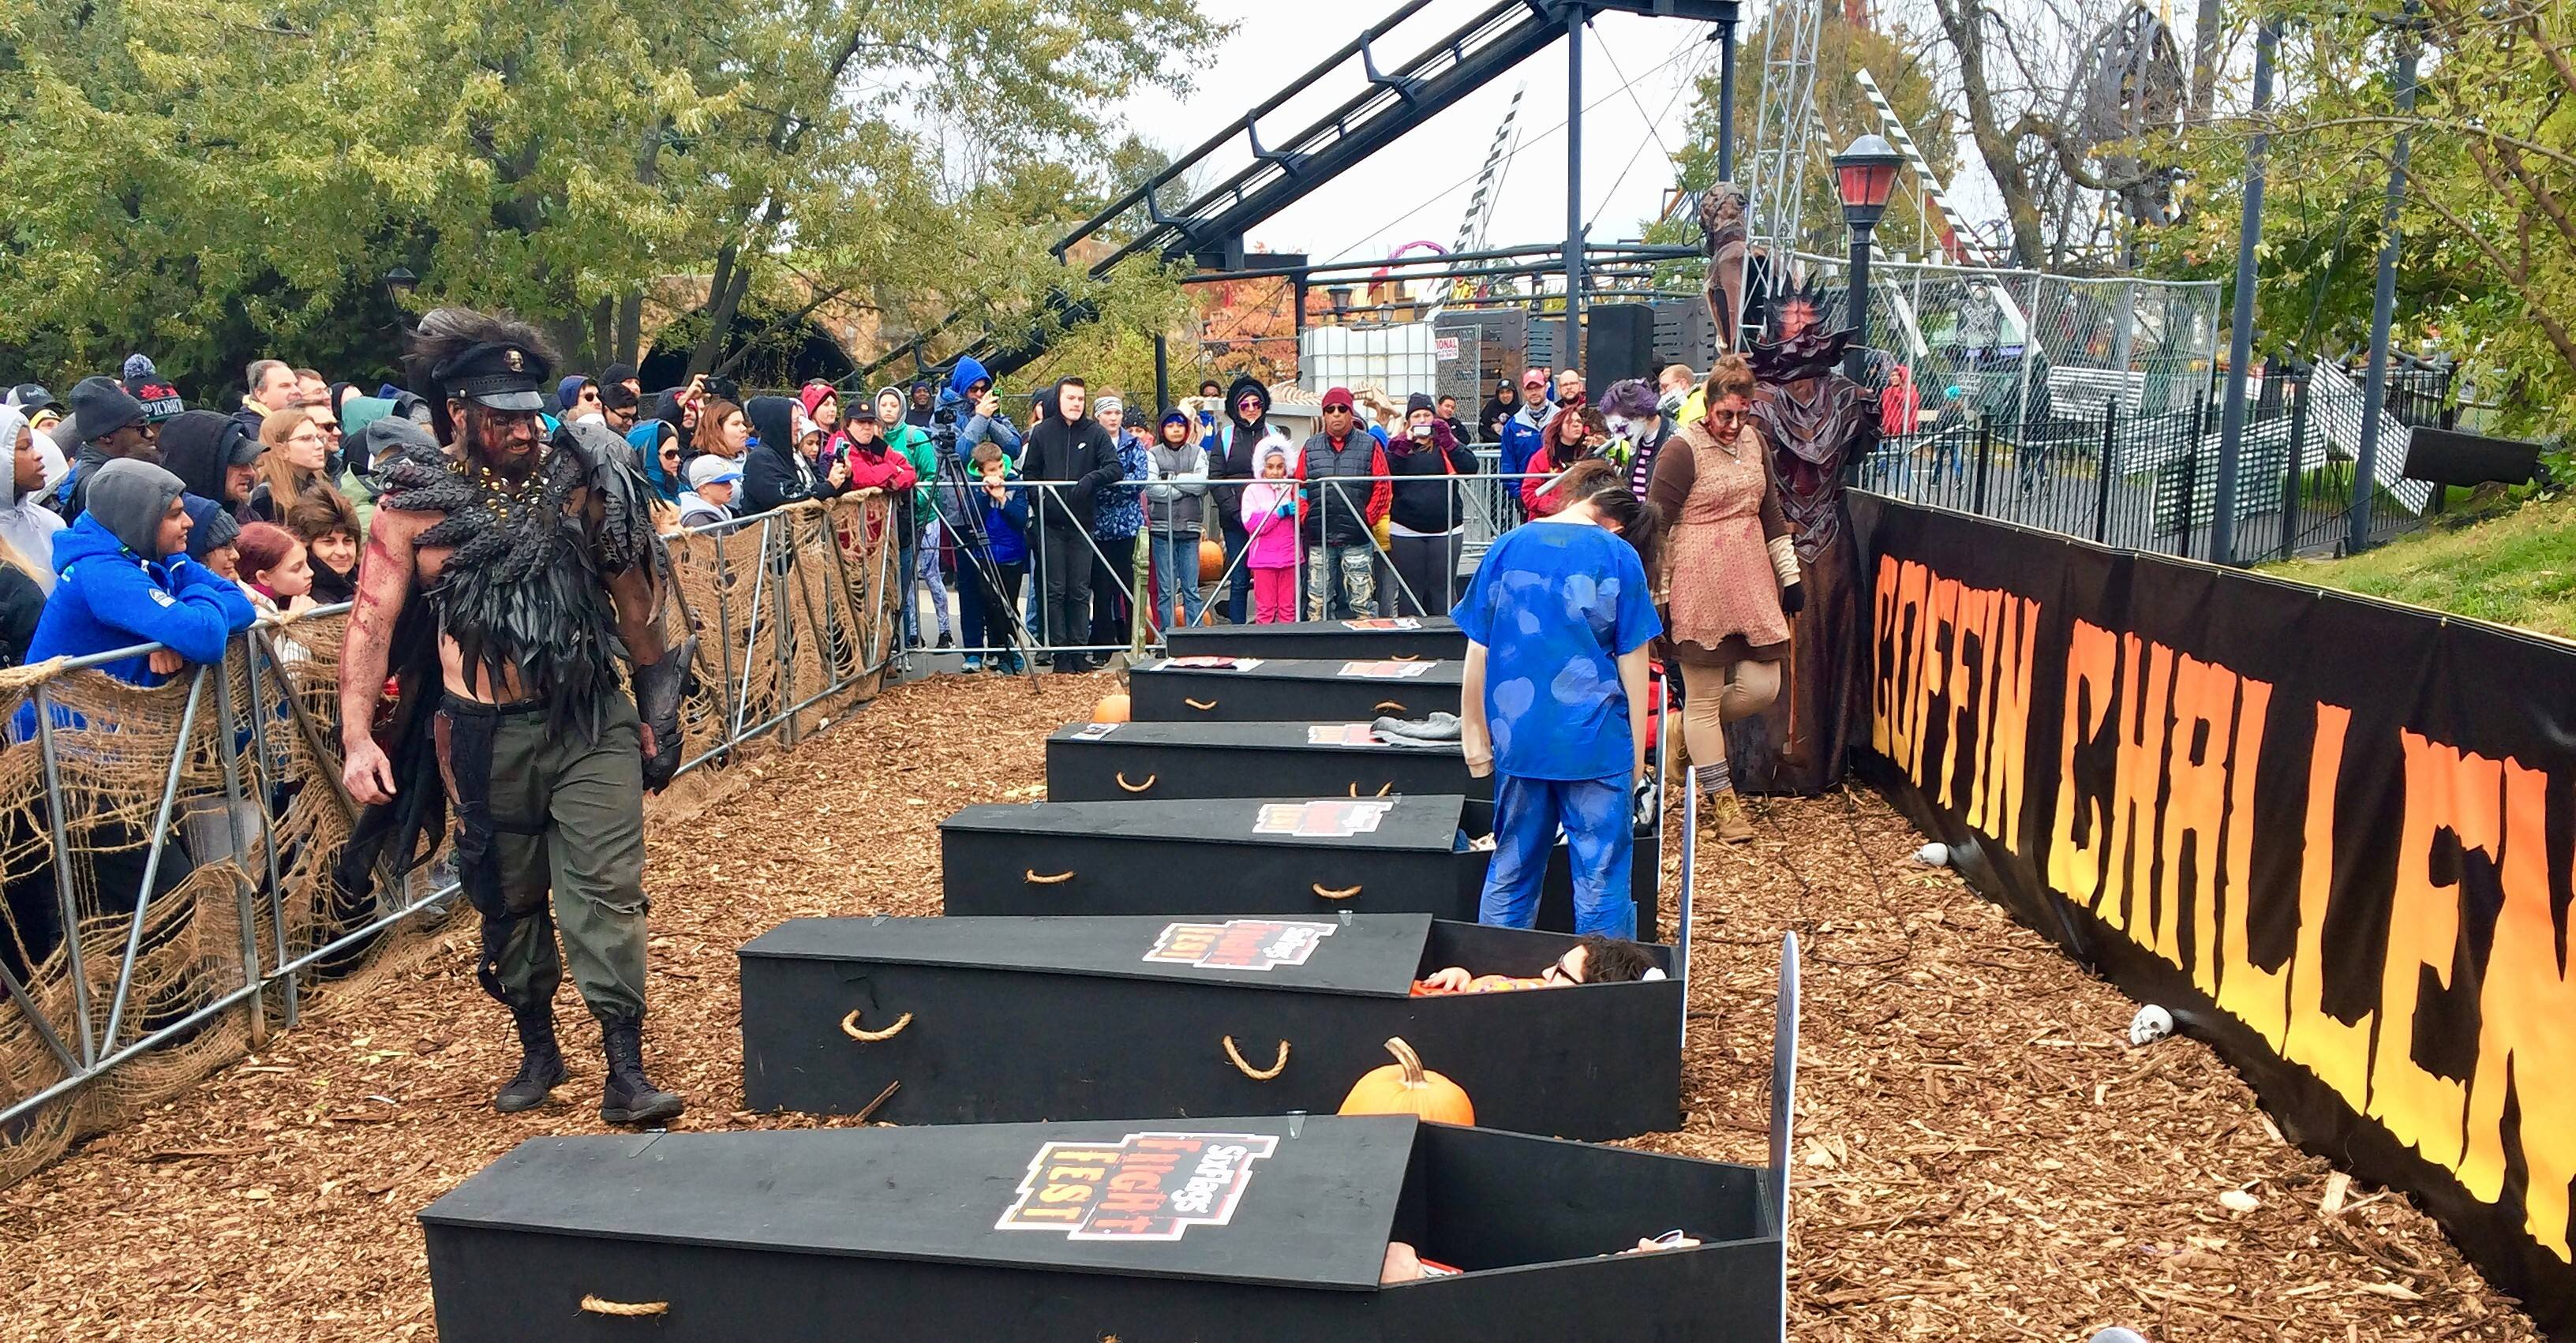 Six participants emerged from their coffins as winners at the end of a contest at Six Flags Great America in Gurnee. This is the start of the 30-hour coffin challenge at 1 p.m. Saturday.